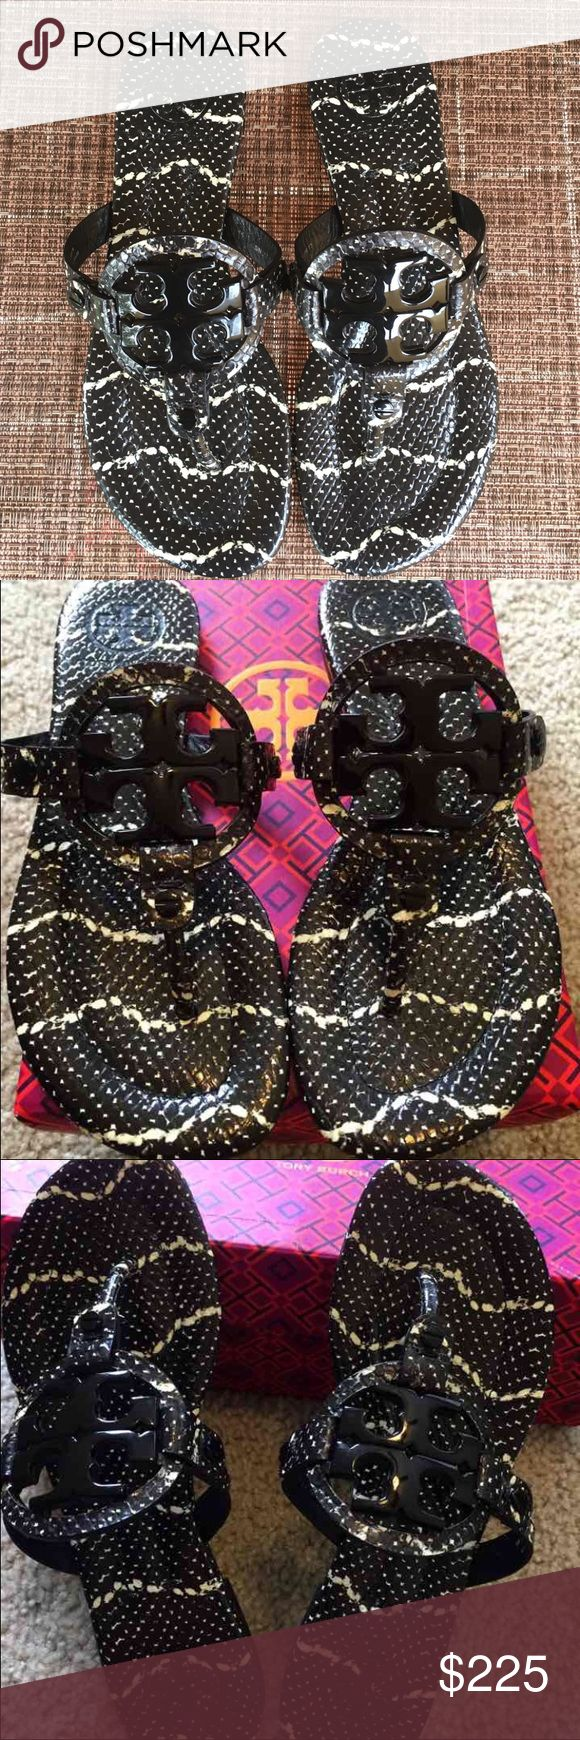 Tory Burch Miller Mojave Sandals 🎉Tory Burch Miller Mojave Black and Ivory Sandals.  Brand new without tags.  Box is included.  If you like Tory Burch, you will love these!!  Timeless and chic!  Must have! Tory Burch Shoes Sandals